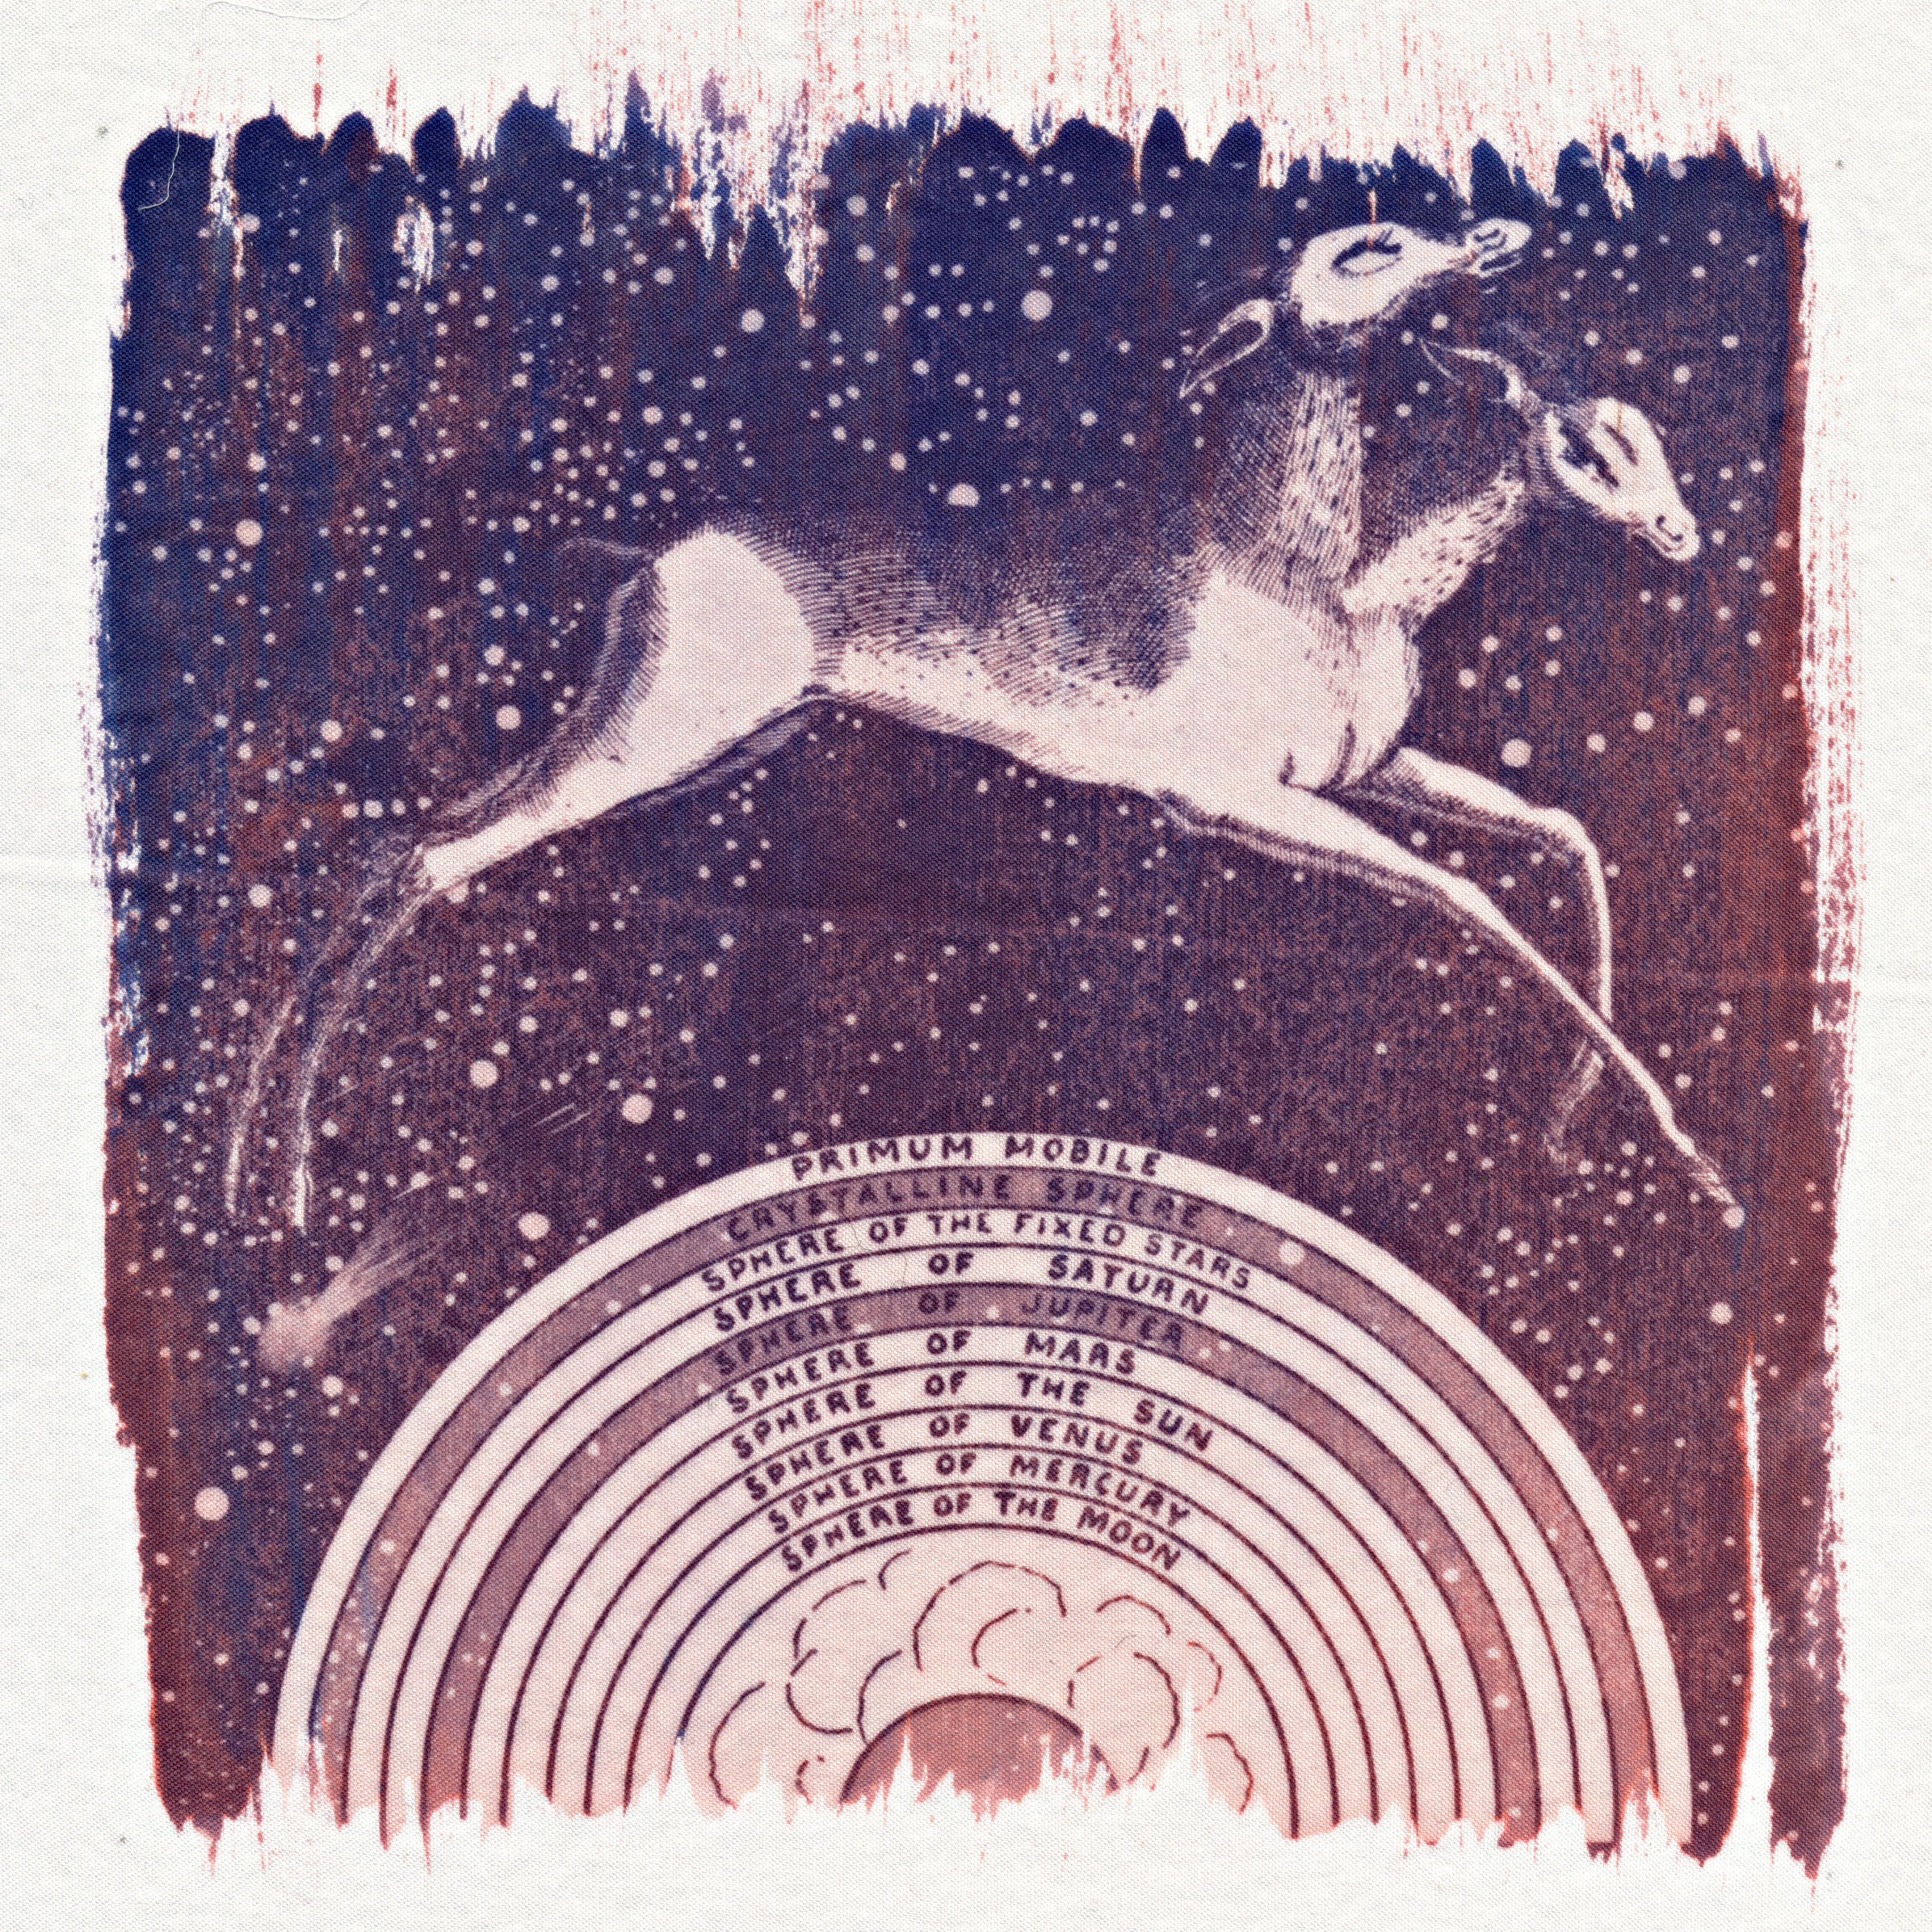 Doppeldeer: Progenitor of Asteroids, Comets and Other Celestial Flotsam